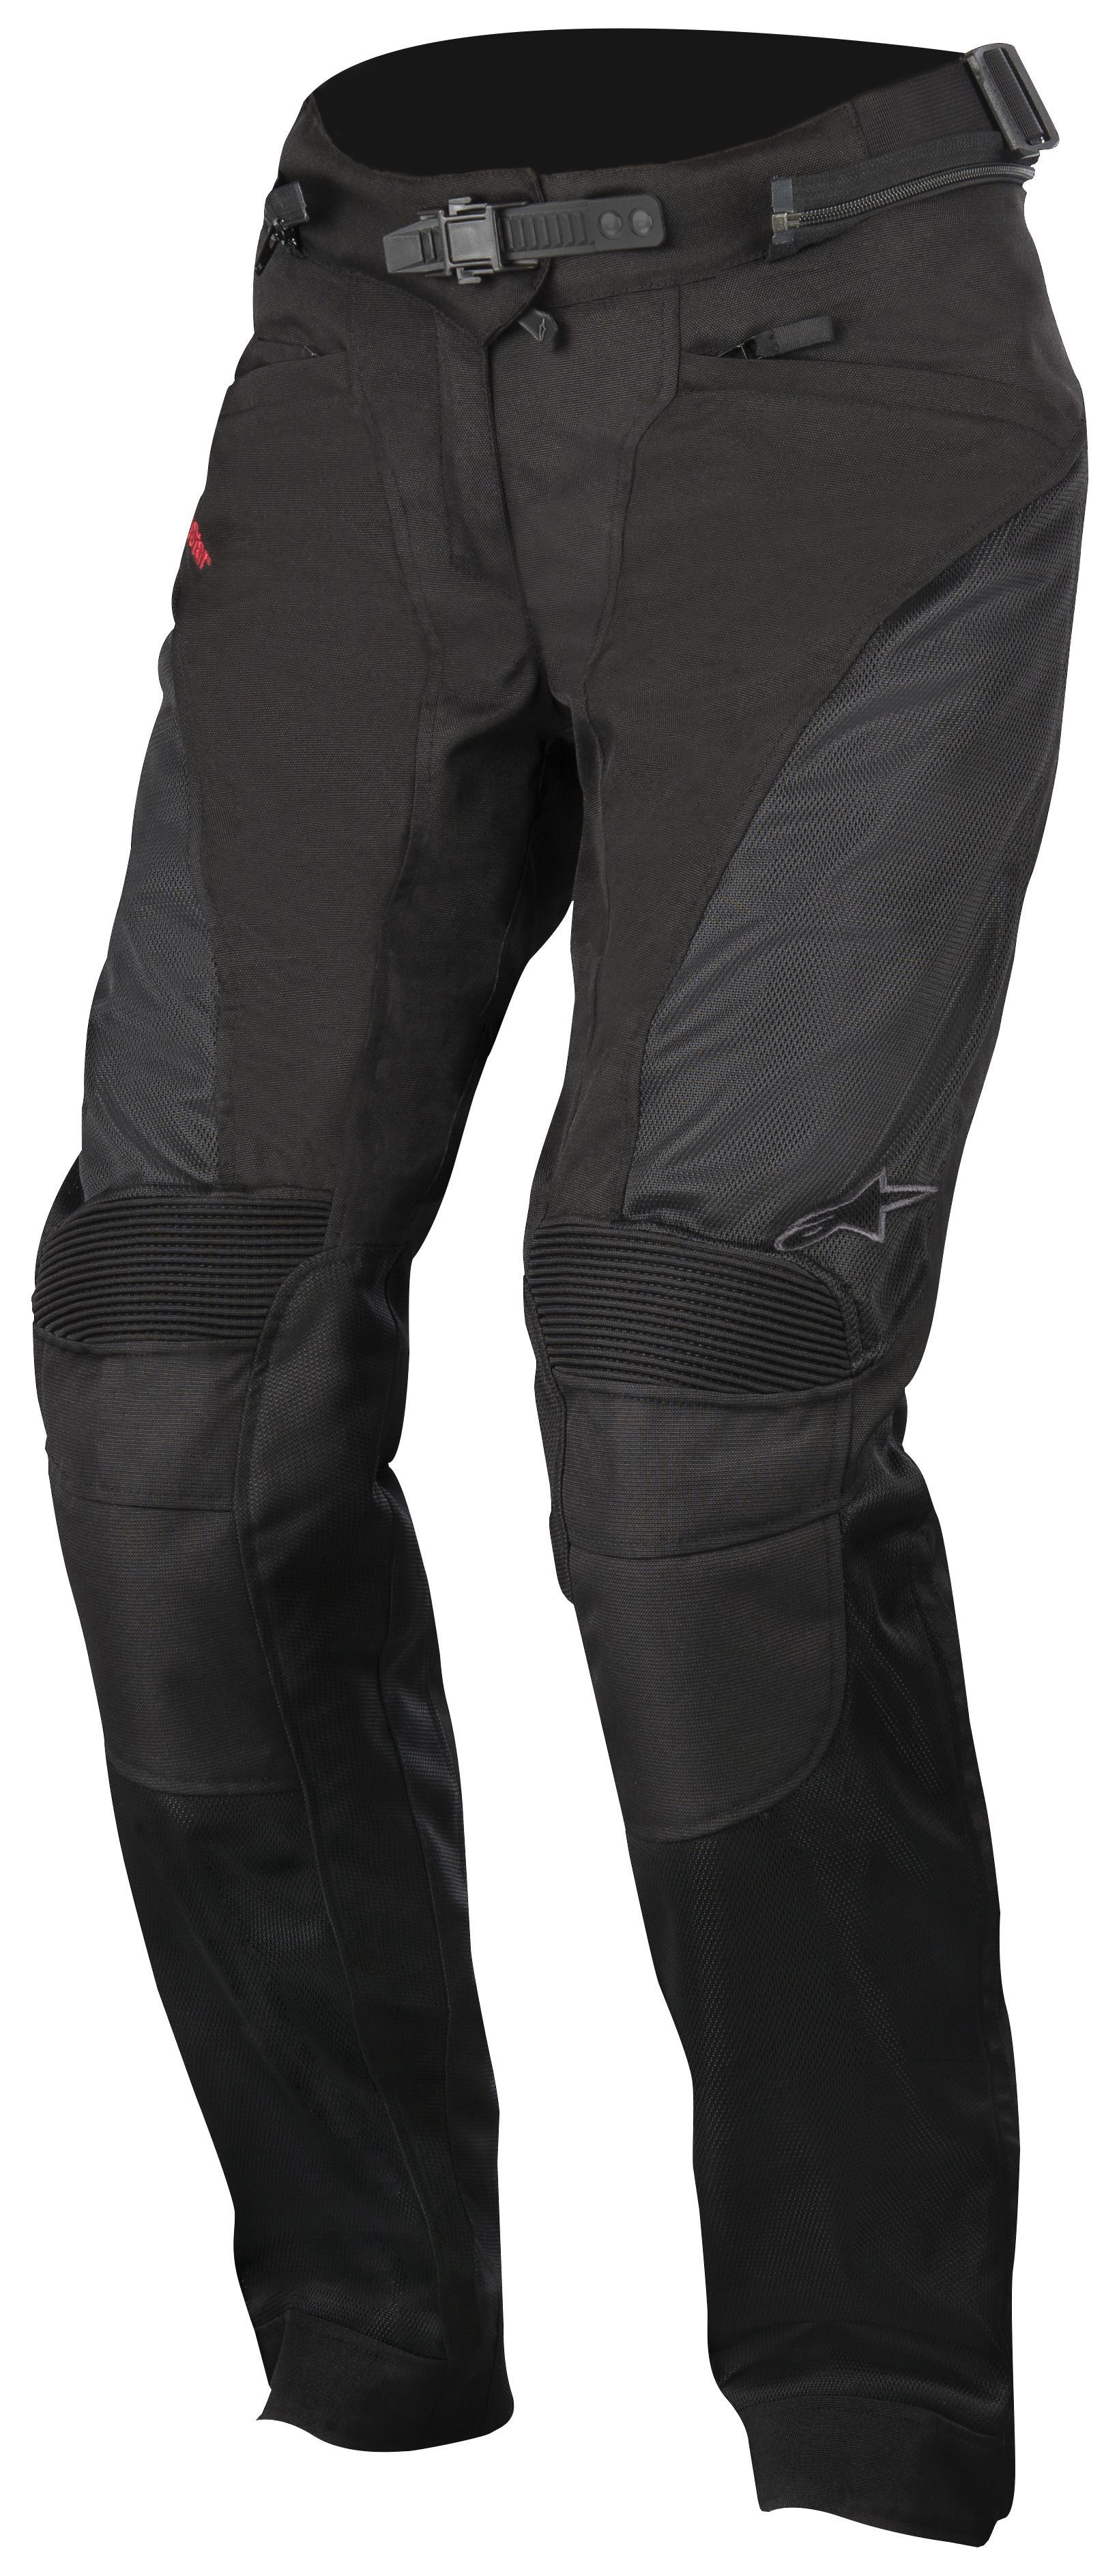 Explore Motorcycle Gear, Women Pants, and more! The ultimate commuting  pant, the Alpinestars Stella Sonoran Air Drystar ...